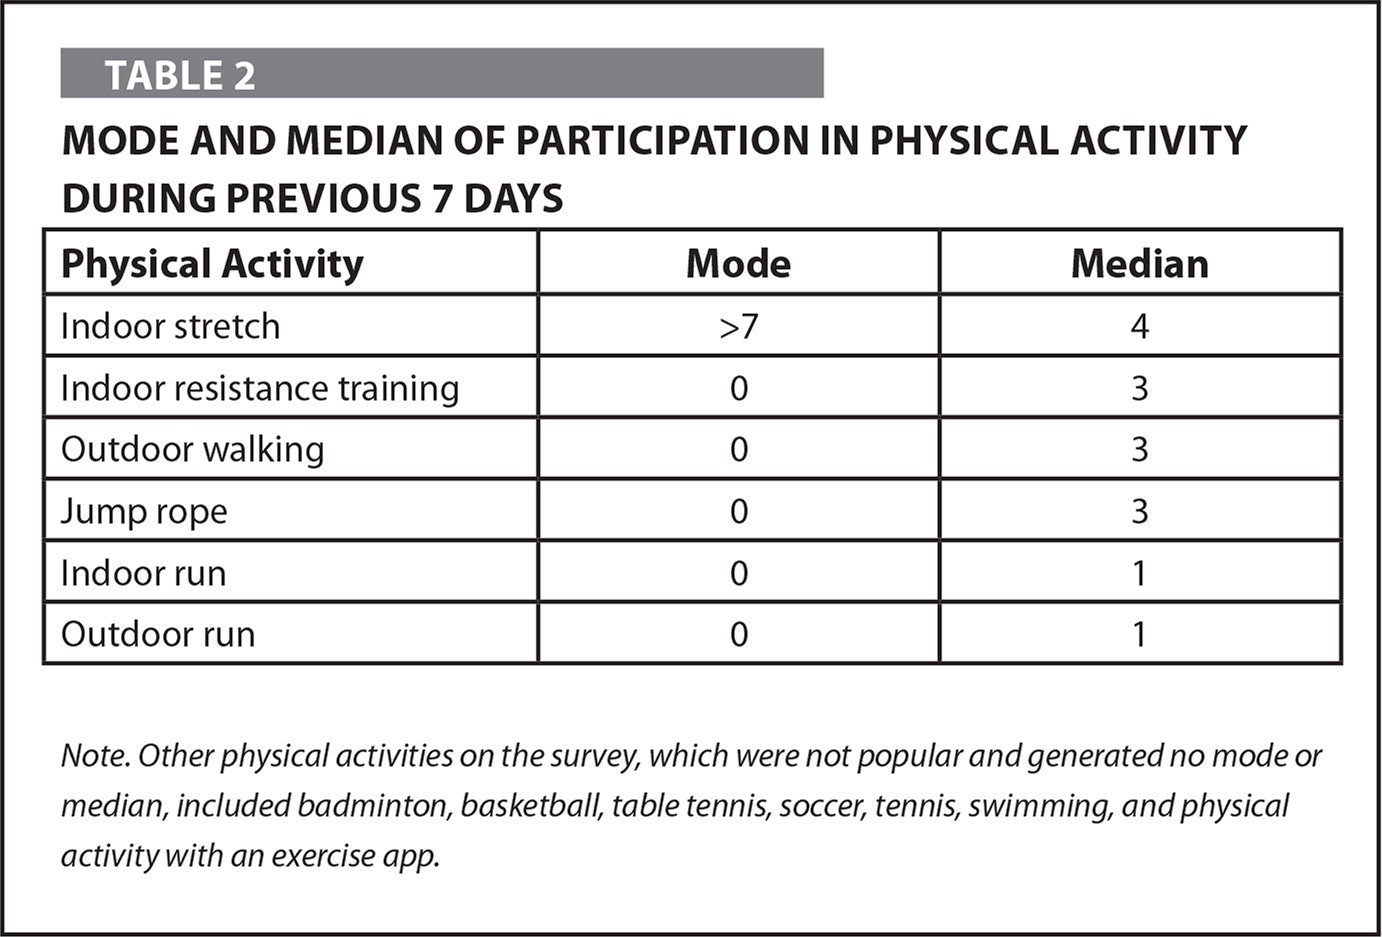 Mode and Median of Participation in Physical Activity During Previous 7 Days